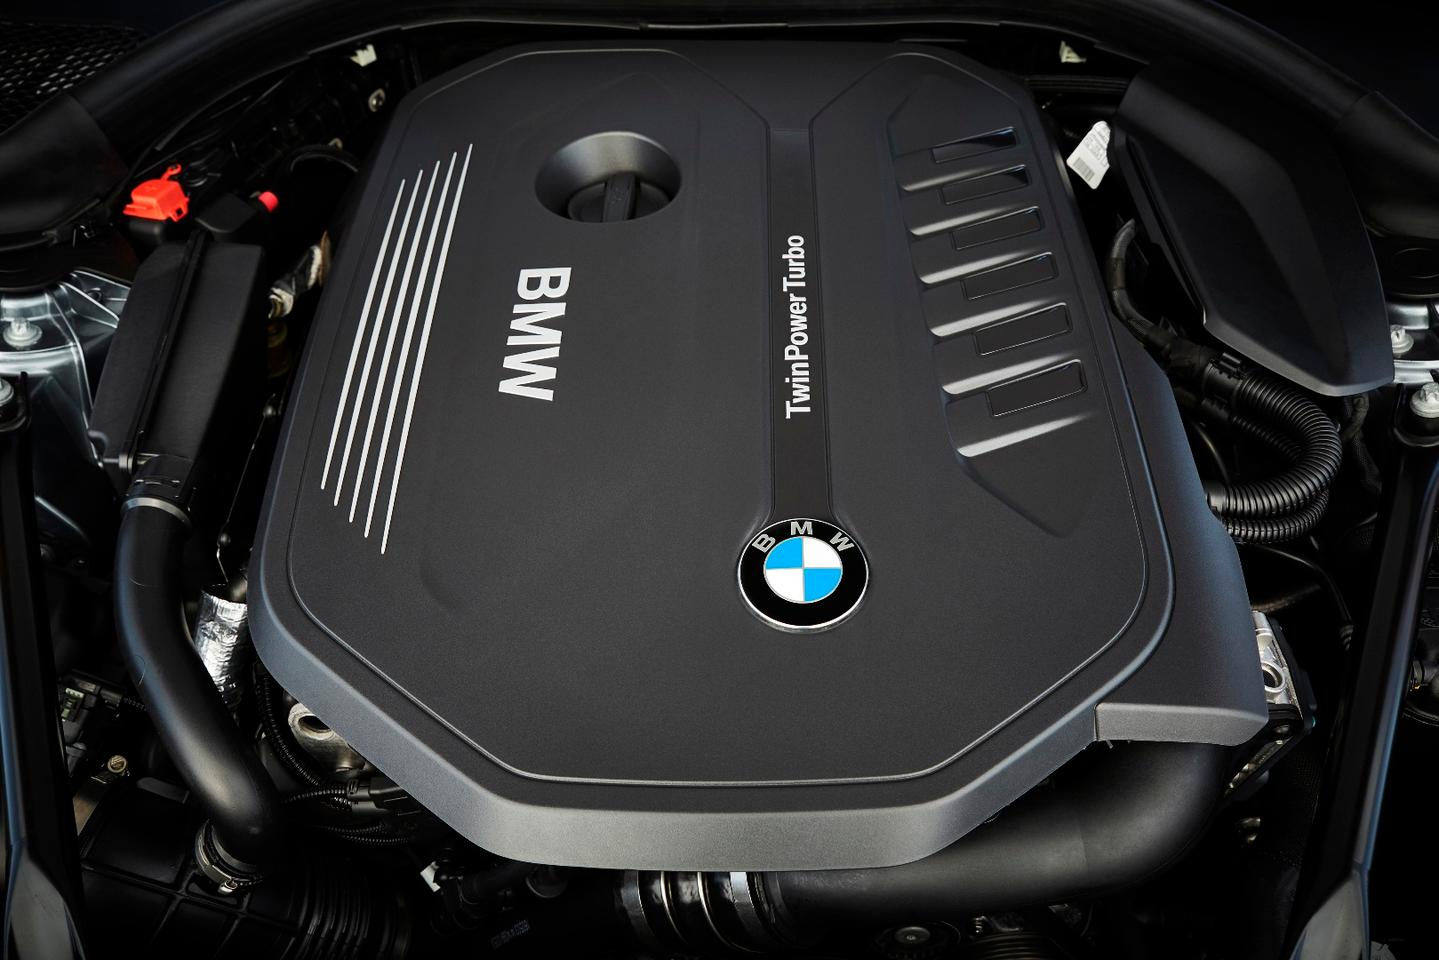 The 530i is the base model with a 2.0-liter four-cylinder engine that's been turbocharged to output 248 hp (185 kW) and 258 lb-ft (350 Nm) of torque